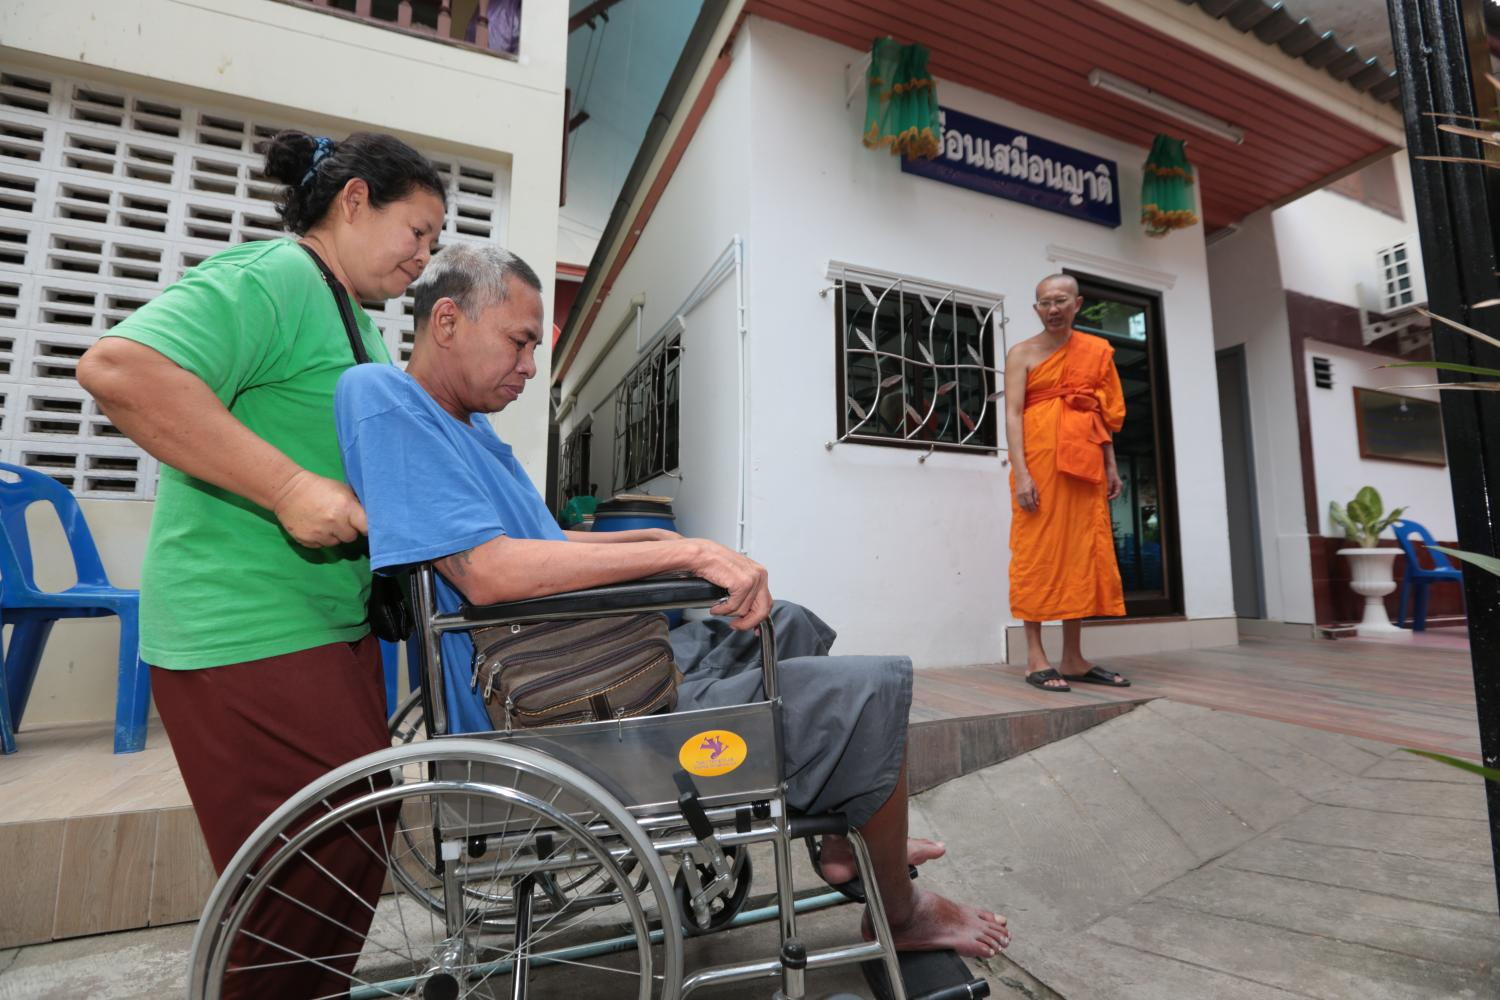 A woman wheels a patient into accommodation at Wat Ammarinthararam Worawihan, where low-income patients of nearby Siriraj Hospital can stay for free along with their relatives. Chanat Katanyu